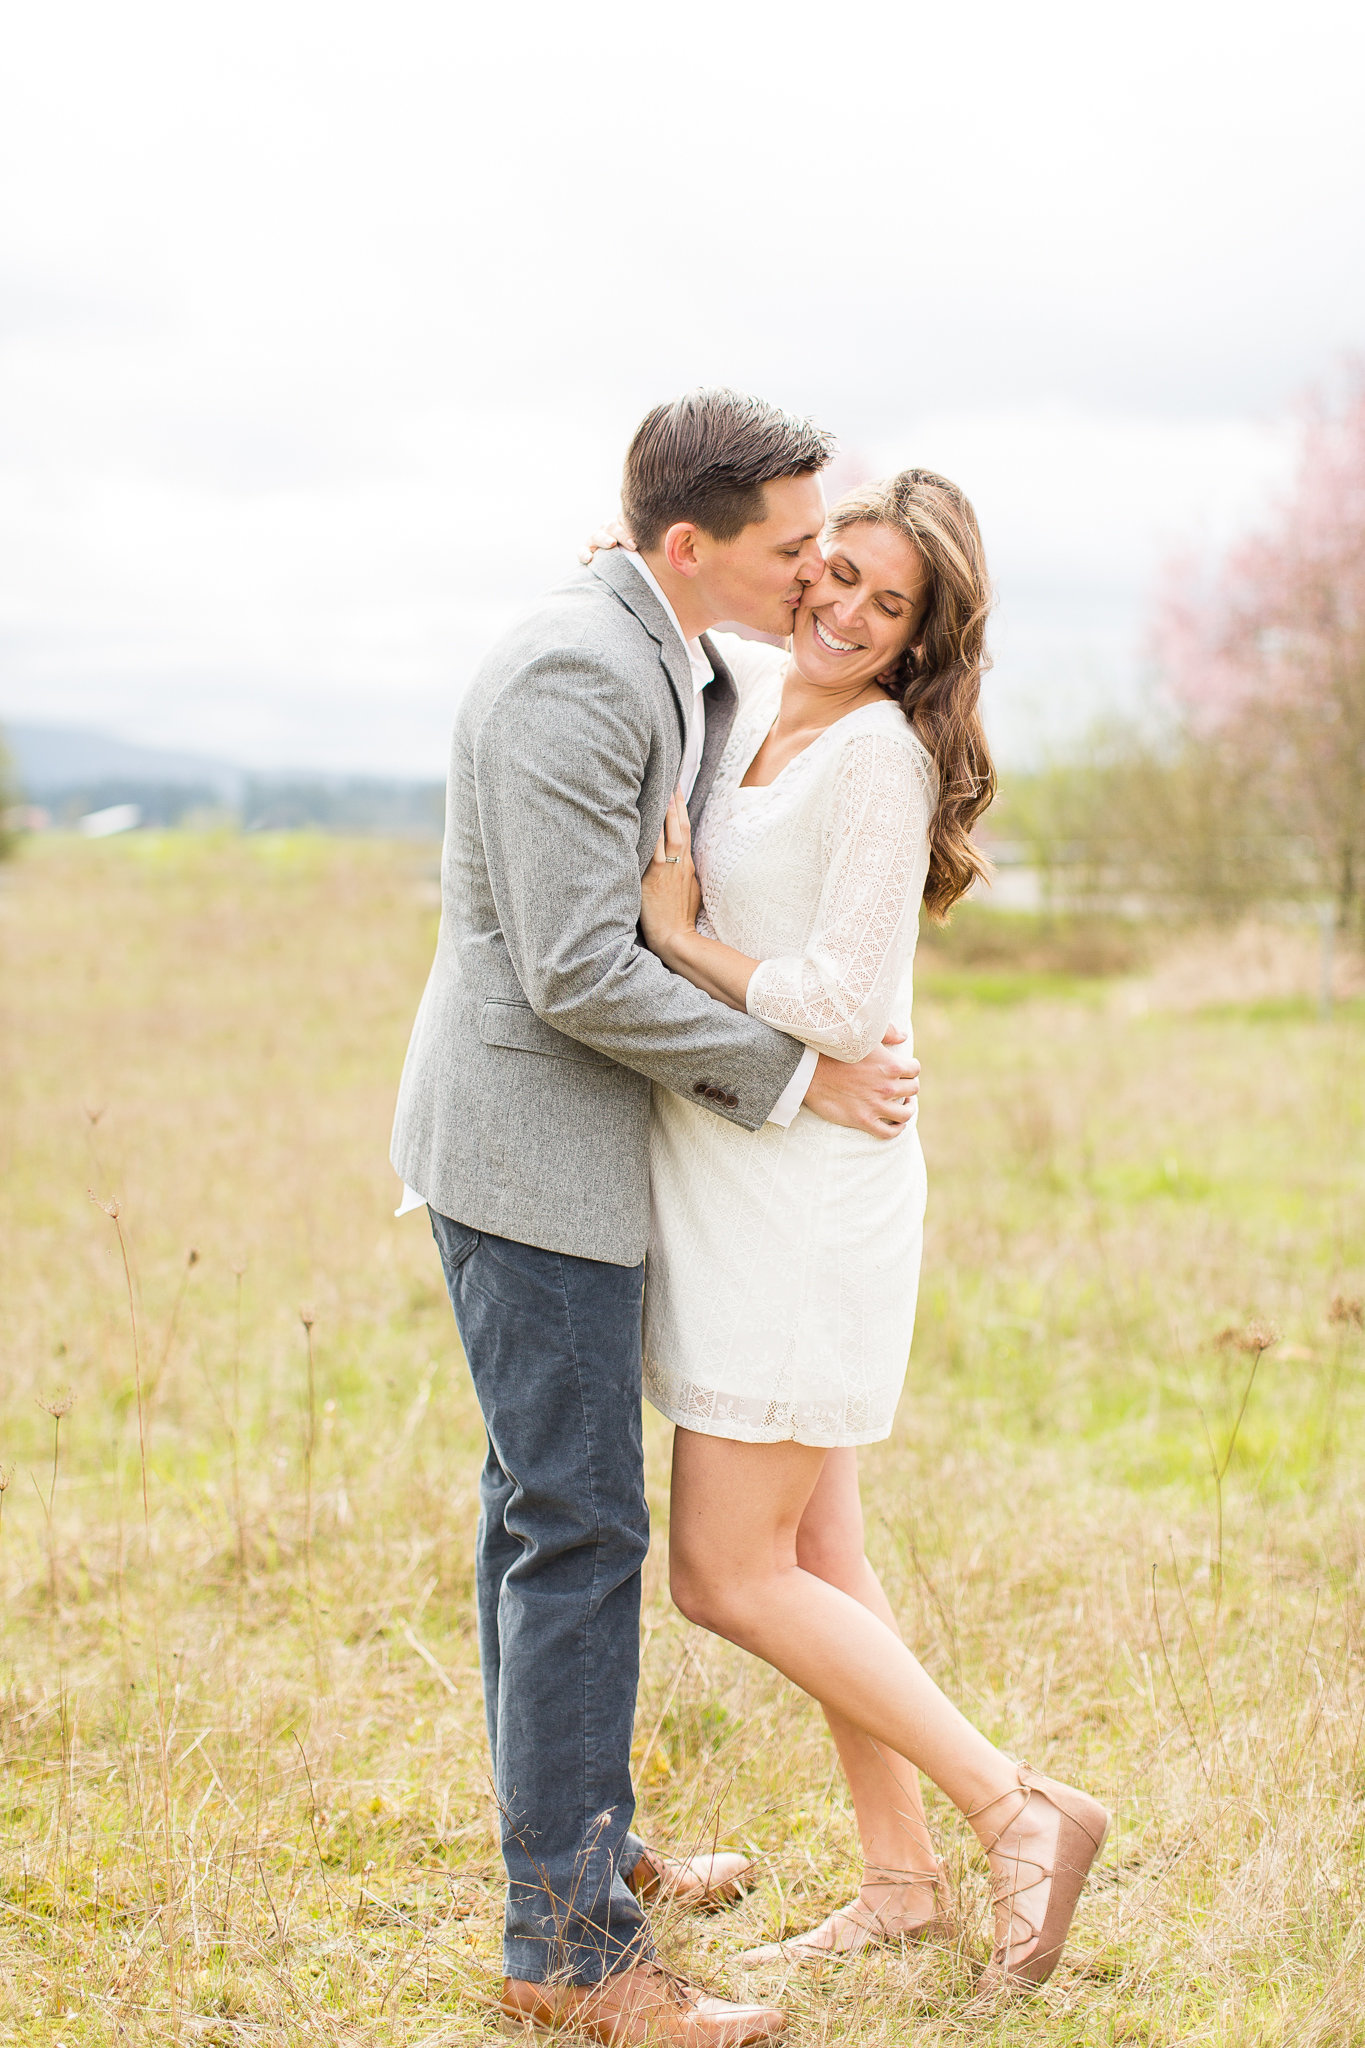 Nick + Jenn | Emily Moller Photography | Maternity Lifestyle | Finals (19 of 22)